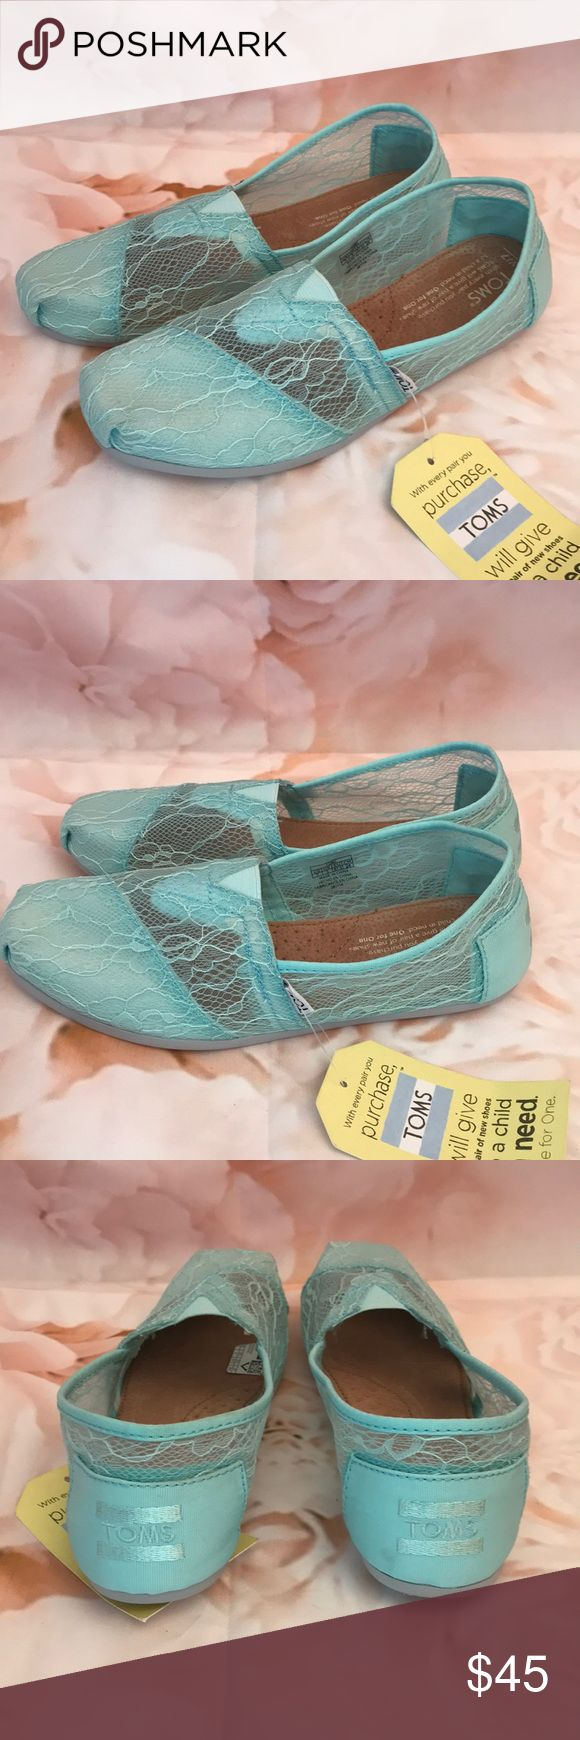 Lace TOMS New without box lace TOMS. Very cute and comfortable. Although these are new with tags there is some minor scuffing at the bottom of the shoe. Otherwise in excellent condition. These shoes go with everything! Toms Shoes Flats & Loafers